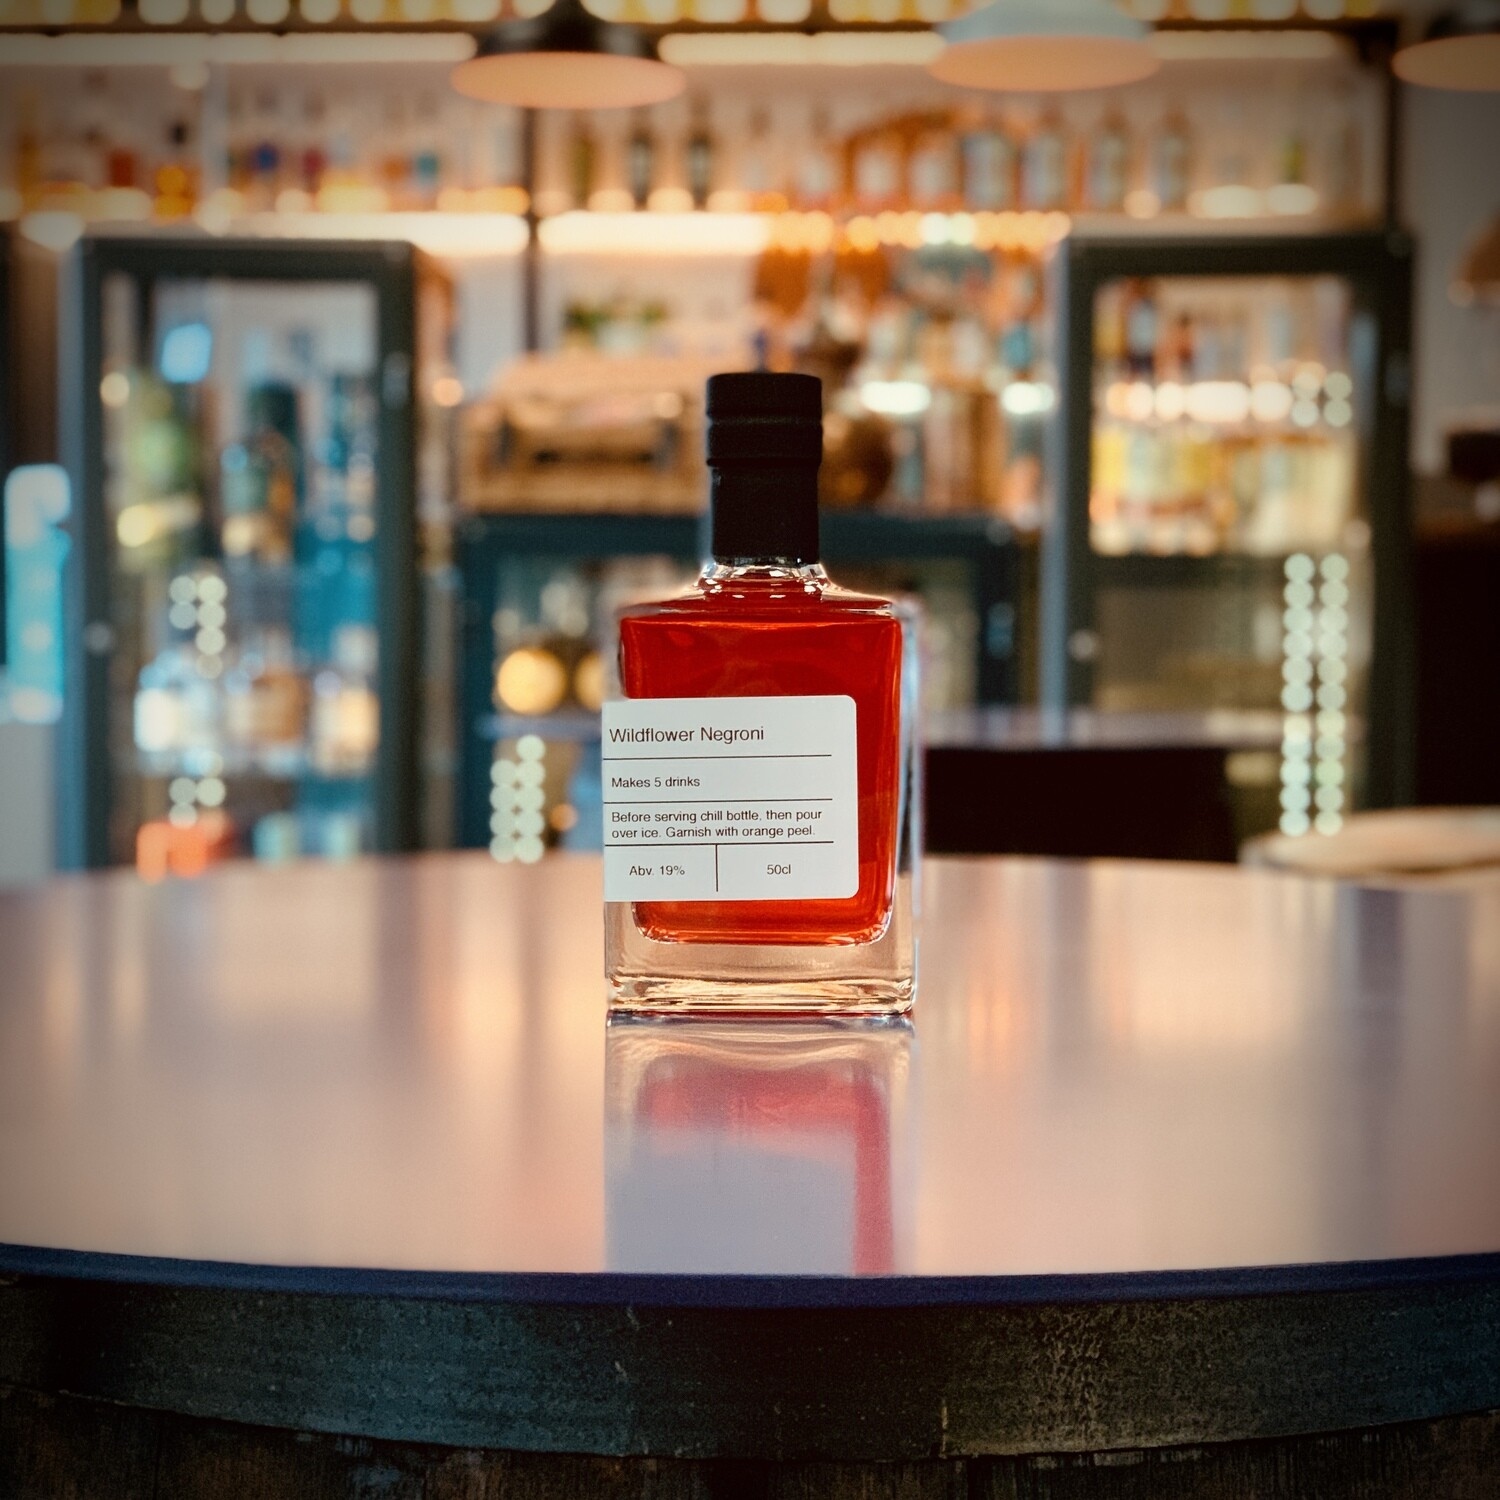 Wildflower Negroni - Bottled Cocktail - 50cl